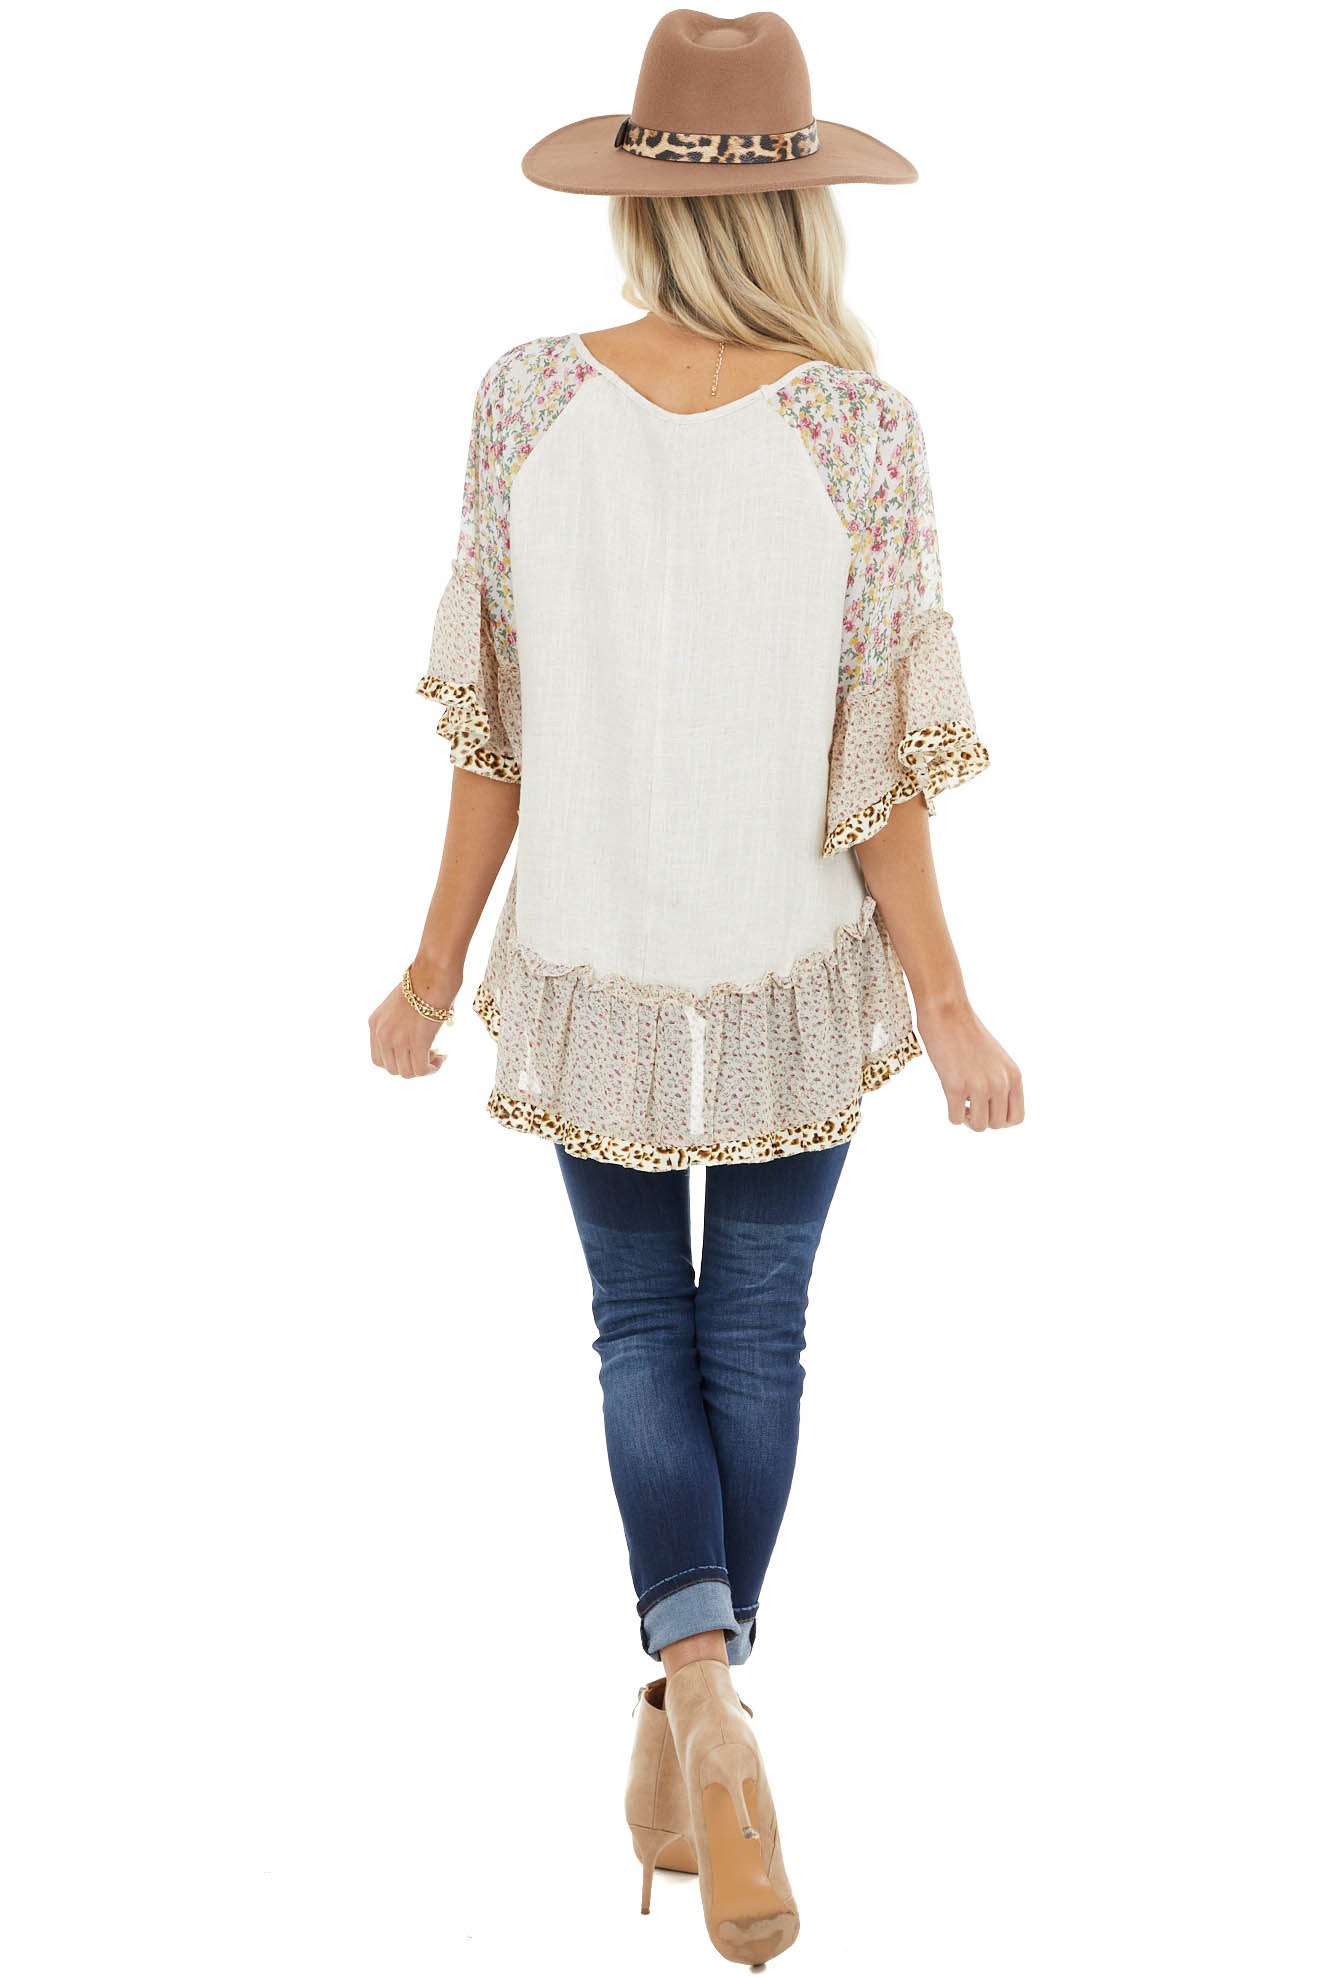 Beige Blouse with Multi Floral Print Ruffle Sleeves and Hem